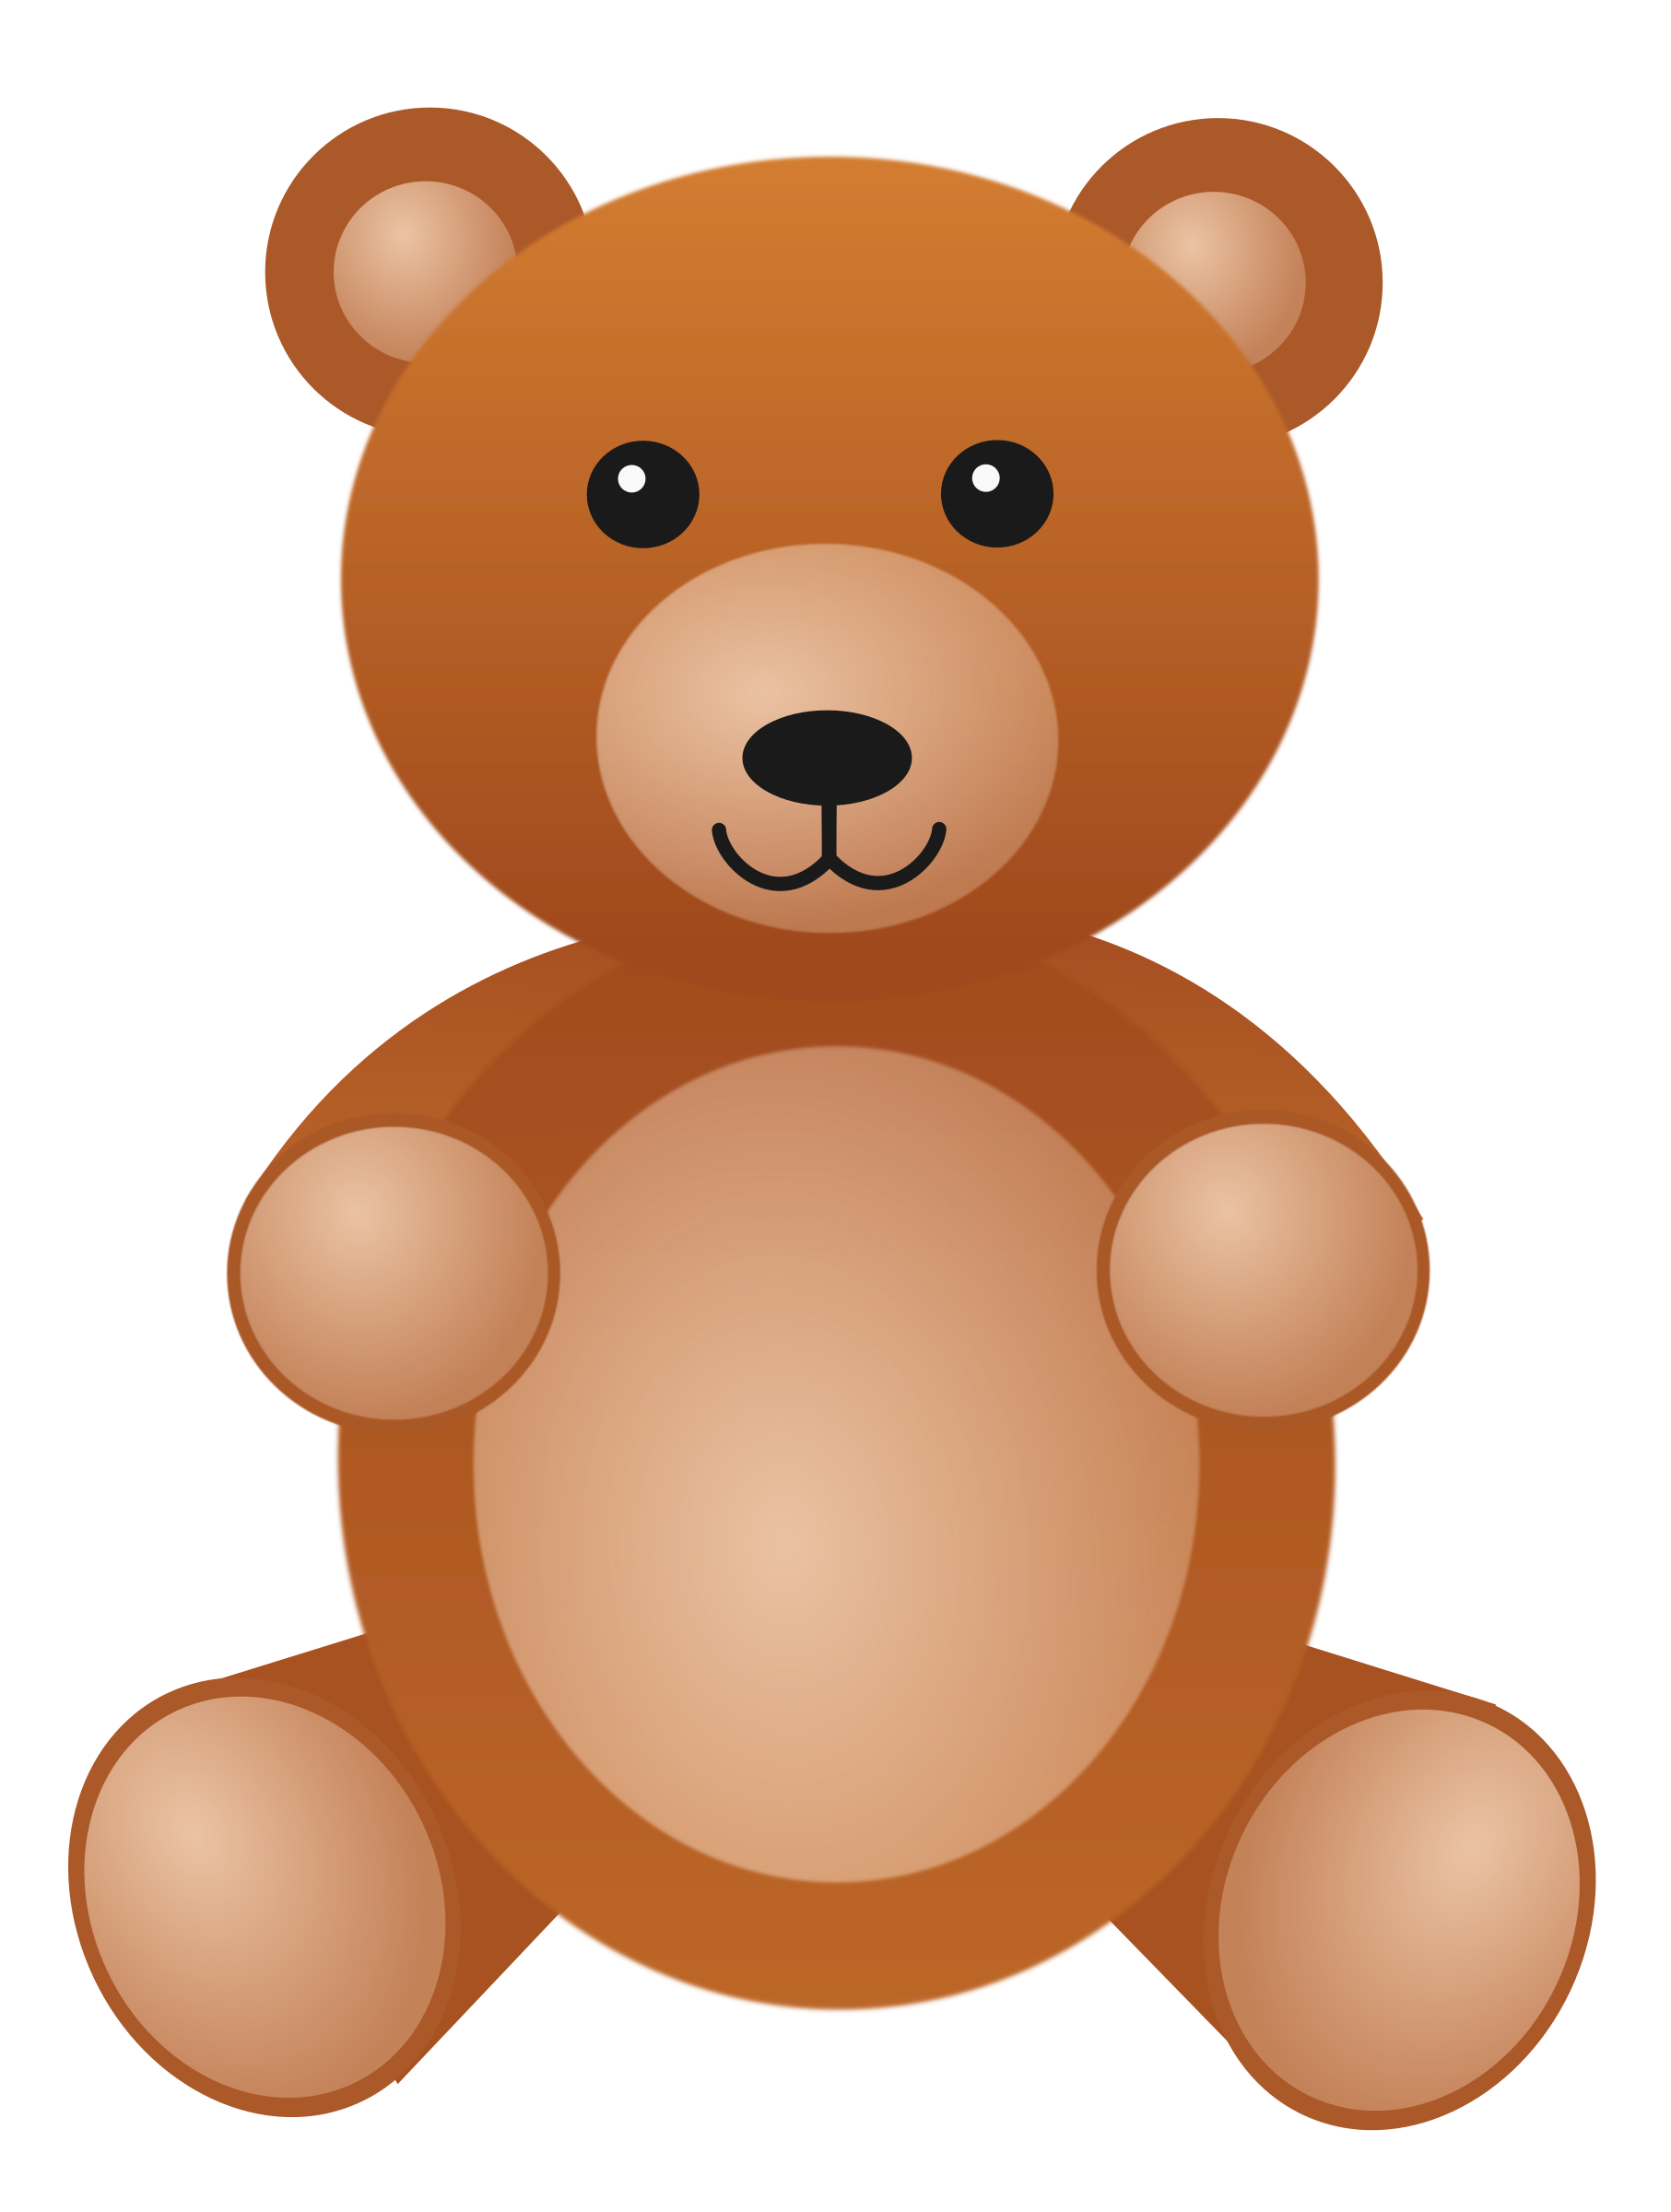 vector black and white stock Teddybear big image png. Cute teddy bear clipart